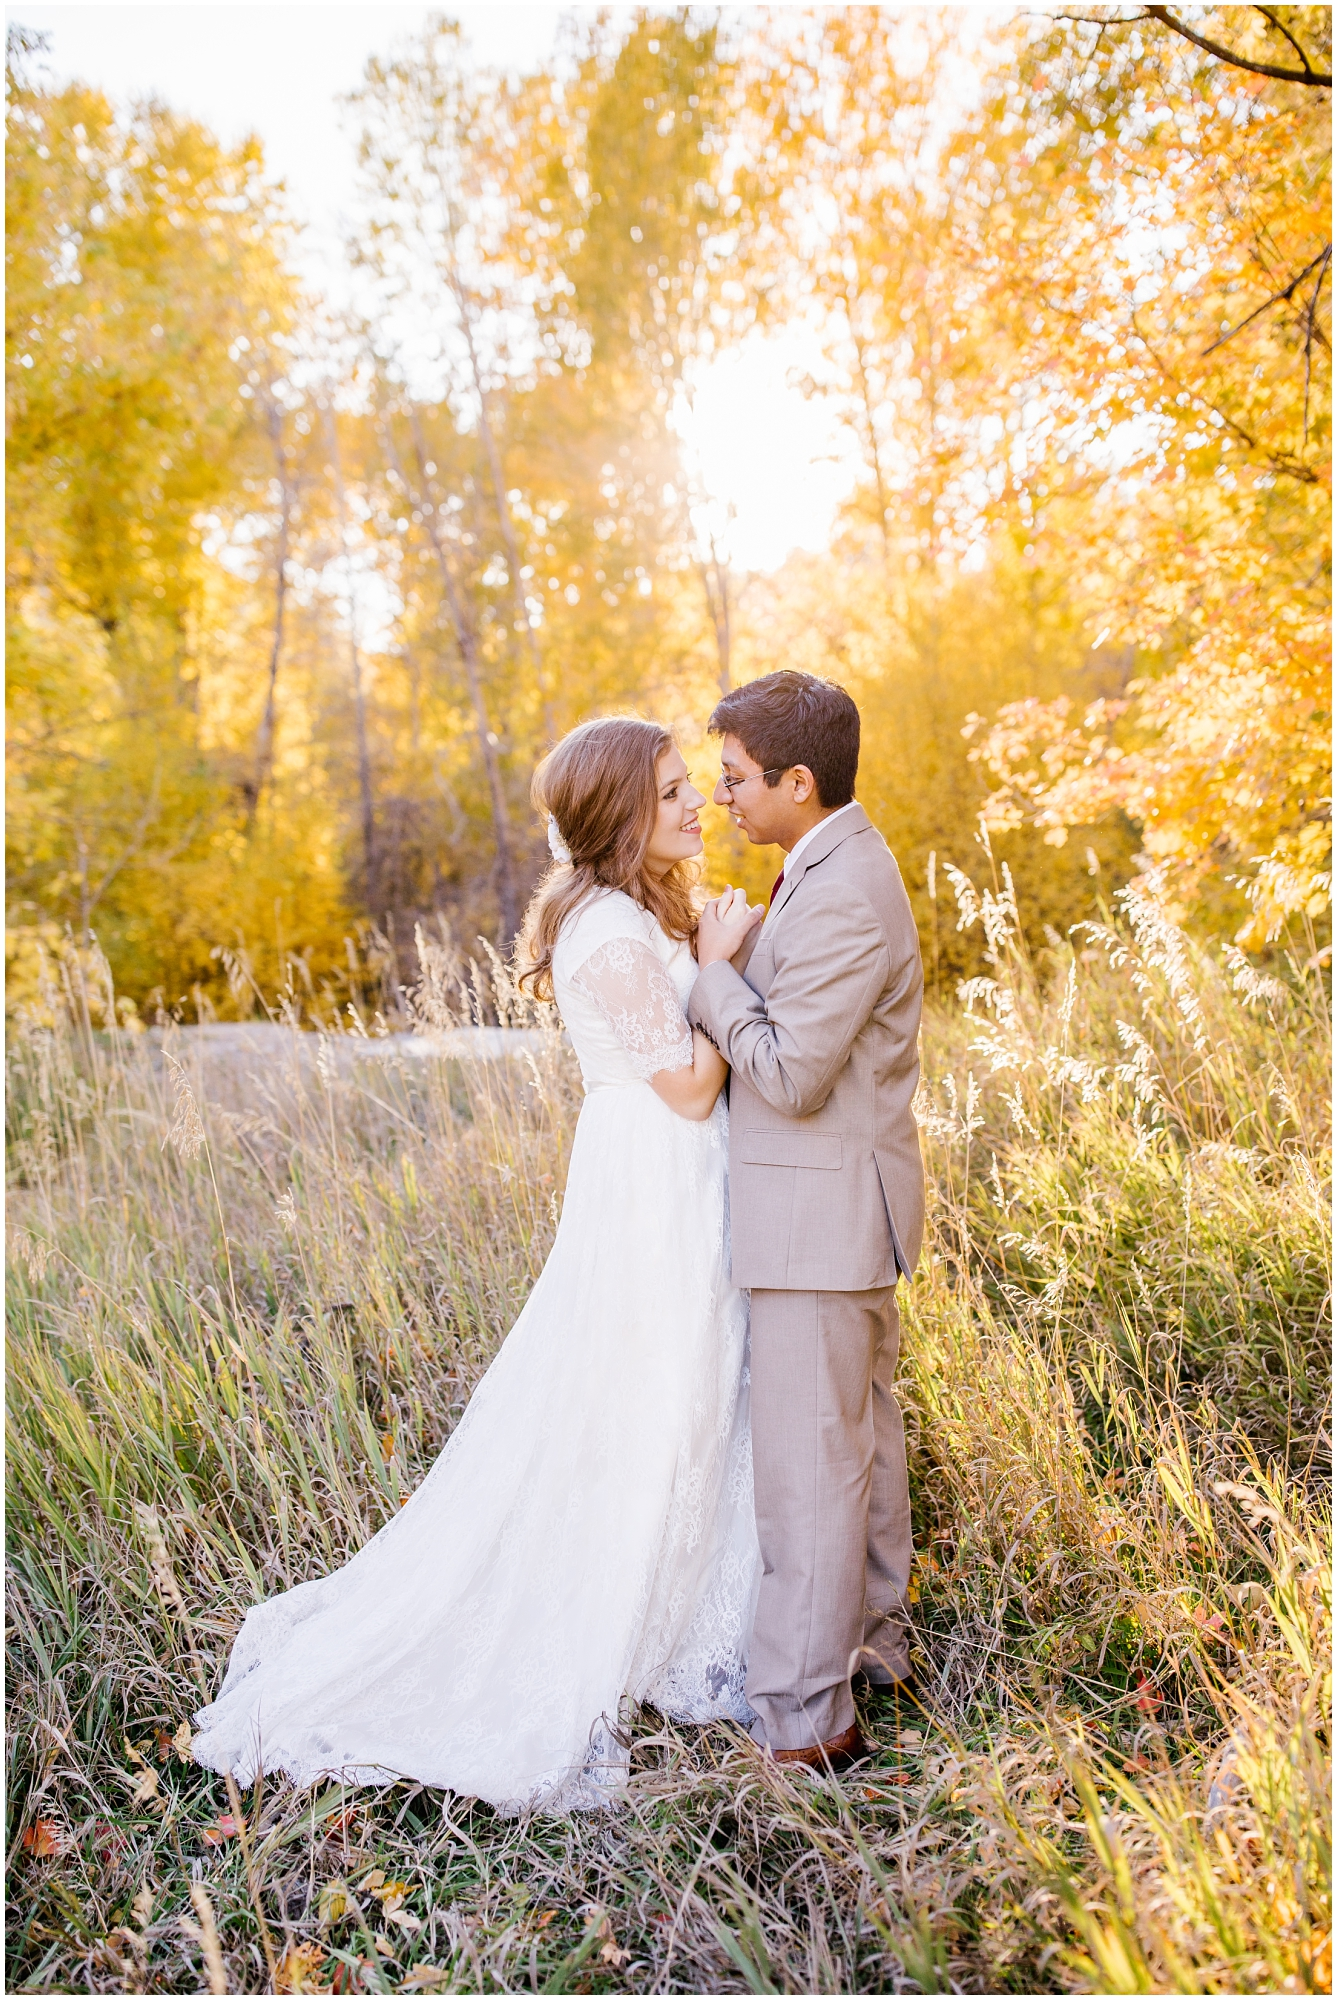 HE-BRIDALS-85_Lizzie-B-Imagery-Utah-Wedding-Photographer-Park-City-Salt-Lake-City-Springville-Utah-Hobble-Creek-Canyon-Jolleys-Ranch.jpg